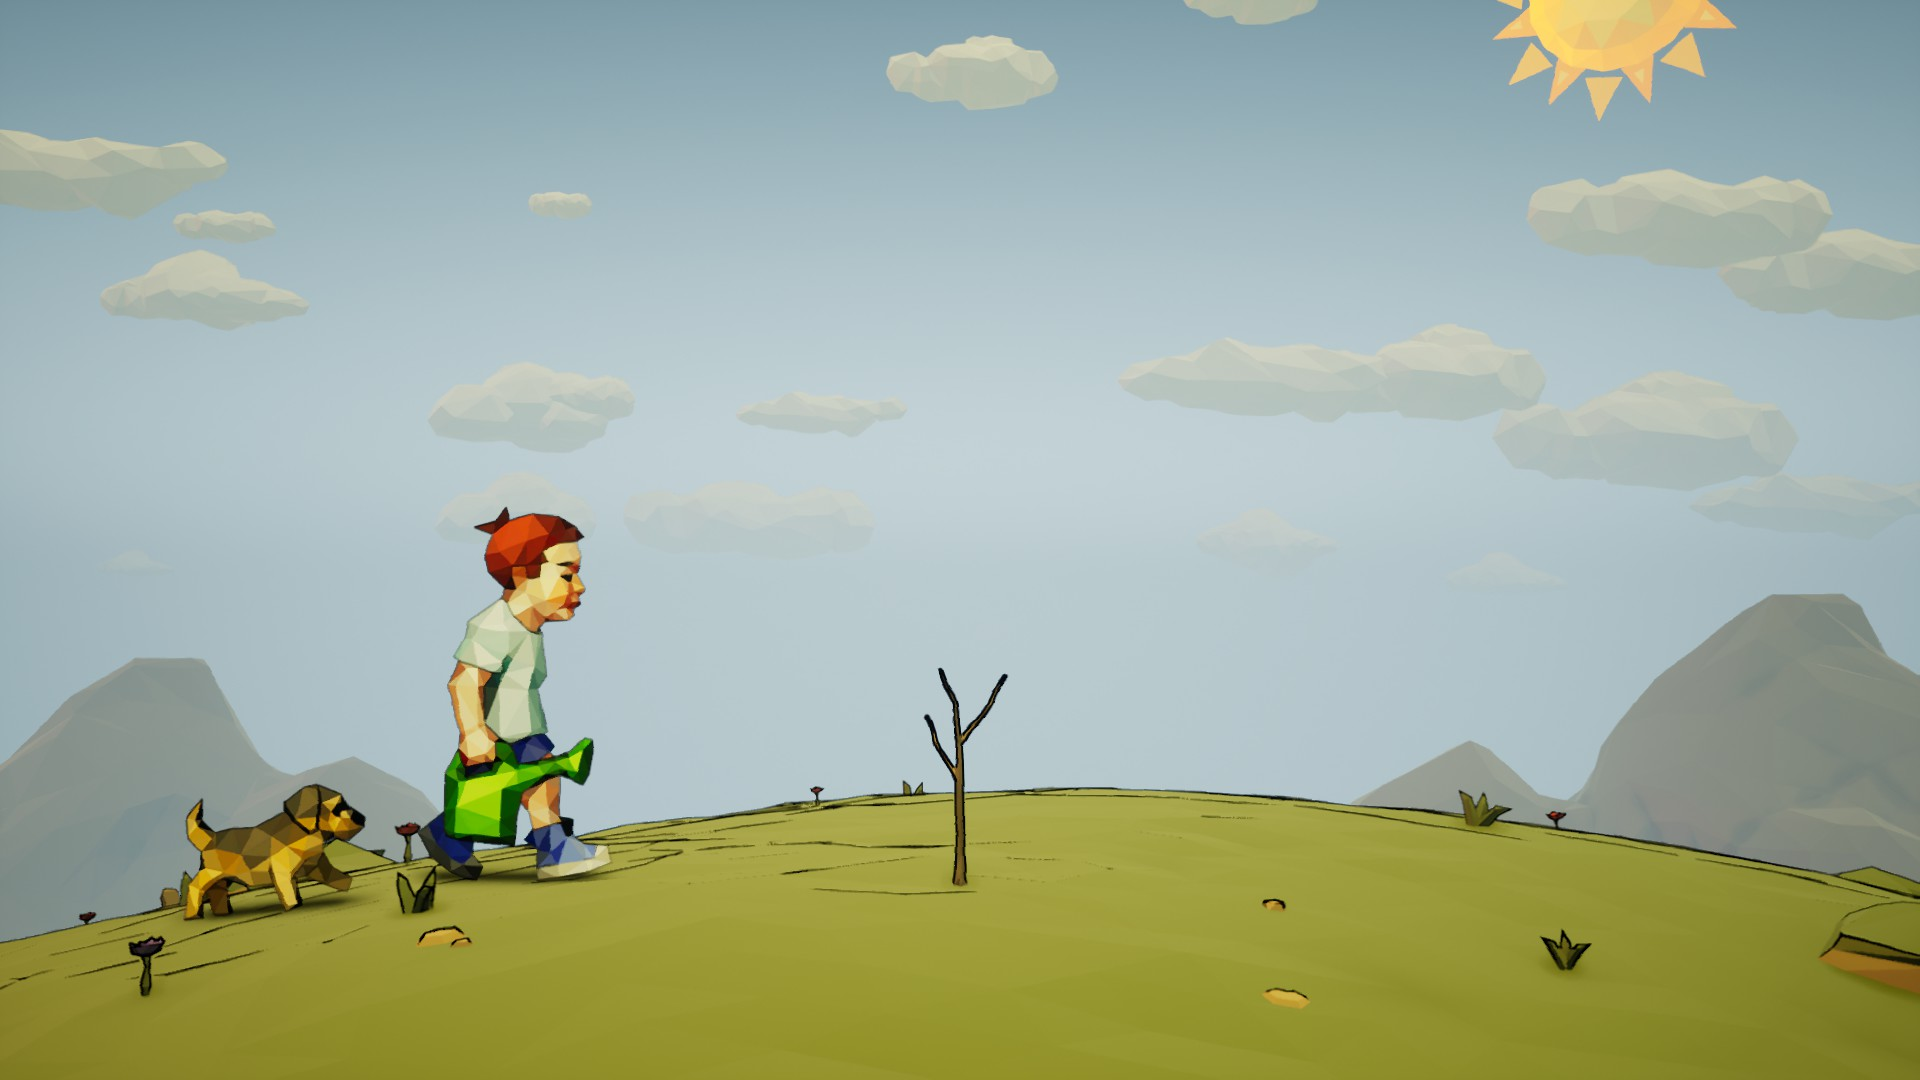 boy with dog and watering can walking toward young tree, 9/10 free steam games